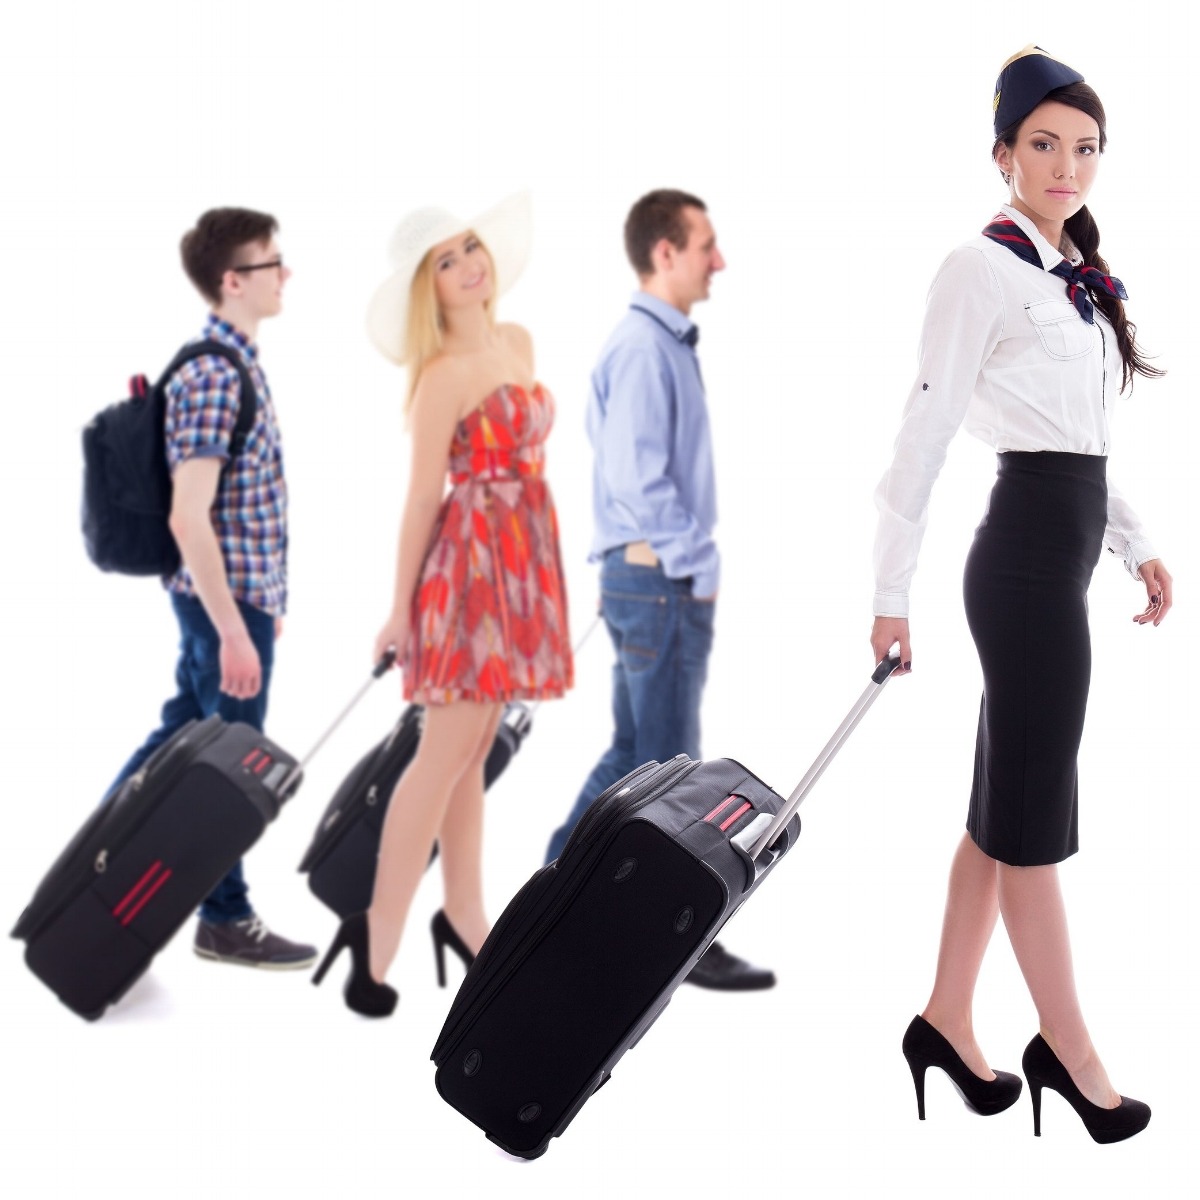 group flight charters servicing groups of 20 to 2000 passengers